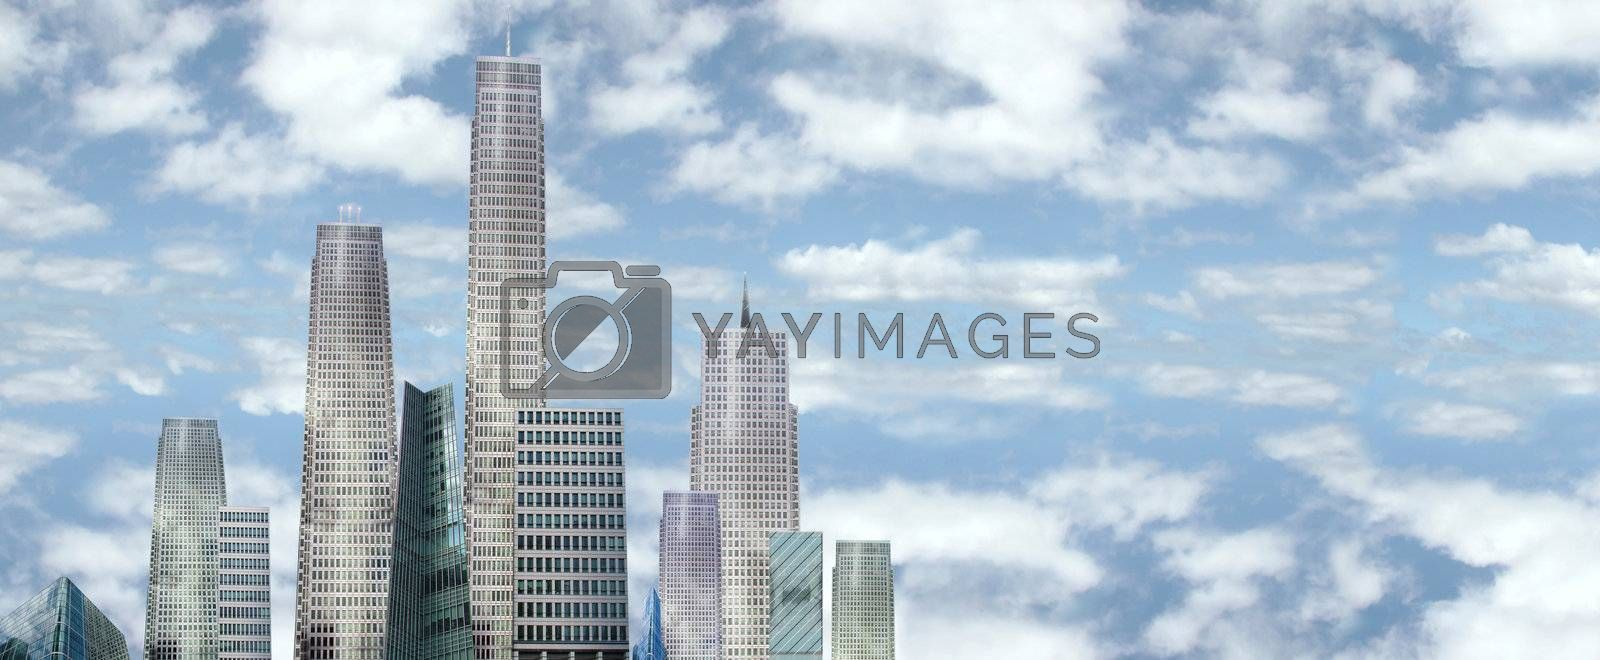 Royalty free image of sky scrapers by morrbyte